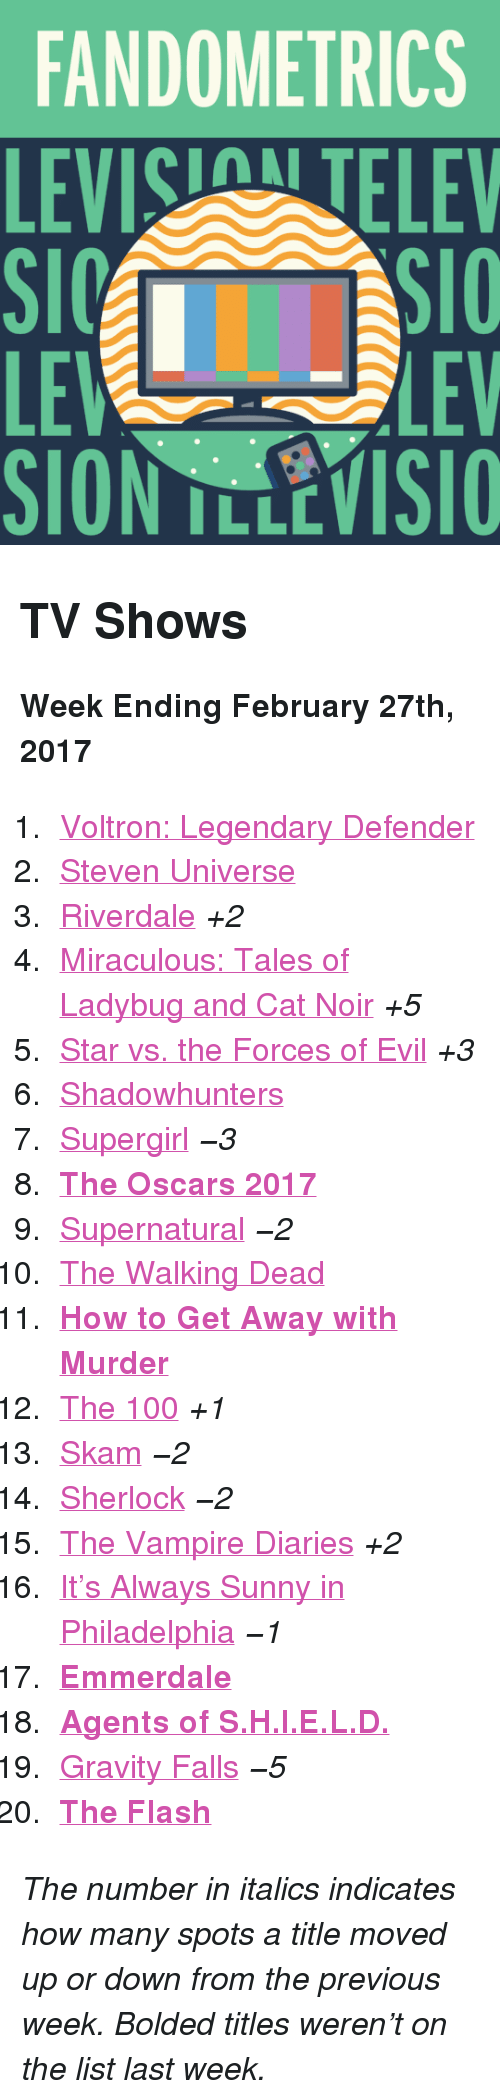 """Anaconda, Oscars, and The Walking Dead: FANDOMETRICS  LEVIS TELEV  LE  SION TLLEVISIO  LEV <h2>TV Shows</h2><p><b>Week Ending February 27th, 2017</b></p><ol><li><a href=""""http://www.tumblr.com/search/voltron"""">Voltron: Legendary Defender</a></li>  <li><a href=""""http://www.tumblr.com/search/steven%20universe"""">Steven Universe</a></li>  <li><a href=""""http://www.tumblr.com/search/riverdale"""">Riverdale</a><i>+2</i></li>  <li><a href=""""http://www.tumblr.com/search/miraculous%20ladybug"""">Miraculous: Tales of Ladybug and Cat Noir</a><i>+5</i></li>  <li><a href=""""http://www.tumblr.com/search/star%20vs%20the%20forces%20of%20evil"""">Star vs. the Forces of Evil</a><i>+3</i></li>  <li><a href=""""http://www.tumblr.com/search/shadowhunters"""">Shadowhunters</a></li>  <li><a href=""""http://www.tumblr.com/search/supergirl"""">Supergirl</a><i><i>−3</i></i></li>  <li><a href=""""http://www.tumblr.com/search/oscars""""><b>The Oscars 2017</b></a></li>  <li><a href=""""http://www.tumblr.com/search/supernatural"""">Supernatural</a><i><i>−2</i></i></li>  <li><a href=""""http://www.tumblr.com/search/the%20walking%20dead"""">The Walking Dead</a></li>  <li><a href=""""http://www.tumblr.com/search/how%20to%20get%20away%20with%20murder""""><b>How to Get Away with Murder</b></a></li>  <li><a href=""""http://www.tumblr.com/search/the%20100"""">The 100</a><i>+1</i></li>  <li><a href=""""http://www.tumblr.com/search/skam"""">Skam</a><i><i>−2</i></i></li>  <li><a href=""""http://www.tumblr.com/search/sherlock"""">Sherlock</a><i><i>−2</i></i></li>  <li><a href=""""http://www.tumblr.com/search/the%20vampire%20diaries"""">The Vampire Diaries</a><i>+2</i></li>  <li><a href=""""http://www.tumblr.com/search/it's%20always%20sunny%20in%20philadelphia"""">It&rsquo;s Always Sunny in Philadelphia</a><i><i>−1</i></i></li>  <li><a href=""""http://www.tumblr.com/search/emmerdale""""><b>Emmerdale</b></a></li>  <li><a href=""""http://www.tumblr.com/search/agents%20of%20shield""""><b>Agents of S.H.I.E.L.D.</b></a></li>  <li><a href=""""http://www.tumblr.com/search/gravity%20falls"""">Gravity Falls</a><i><i"""